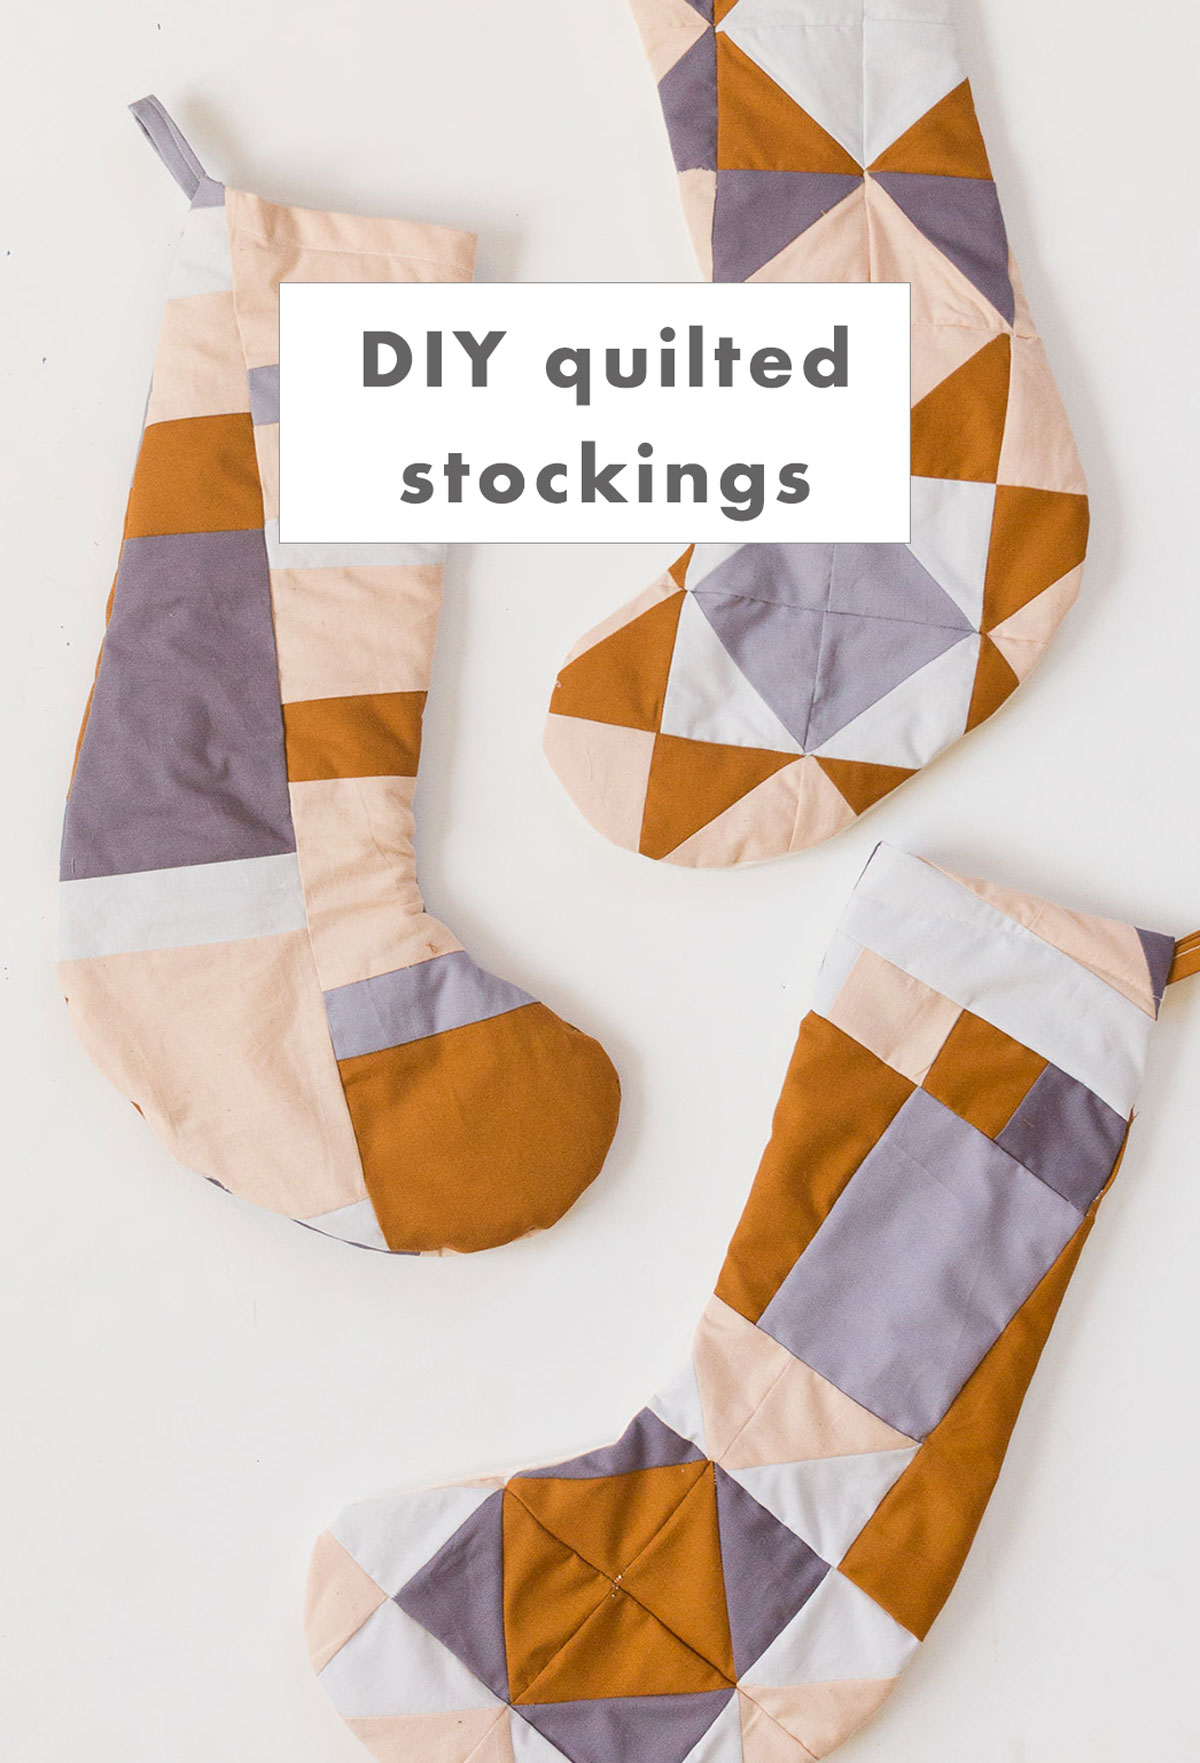 Three quilted Christmas stockings laid out on a white background.